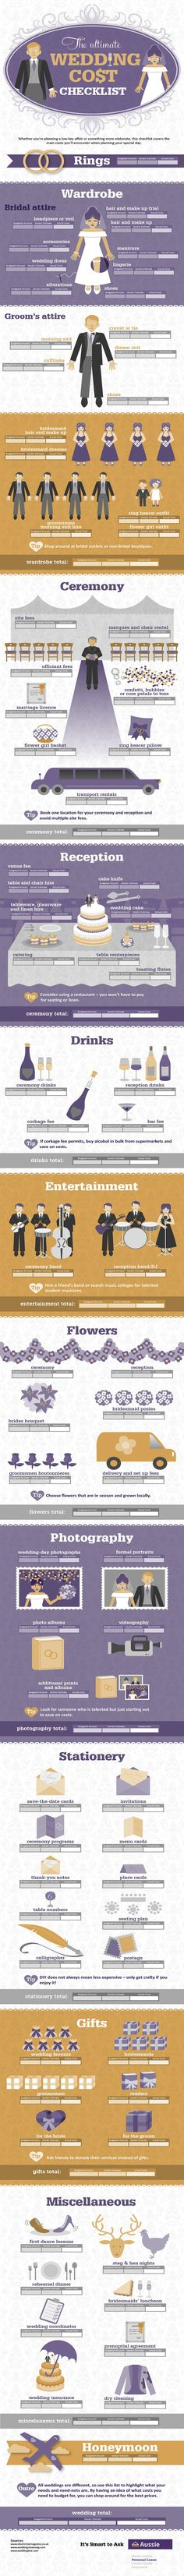 The Ultimate Wedding Cost Checklist Infographic #tips #budget